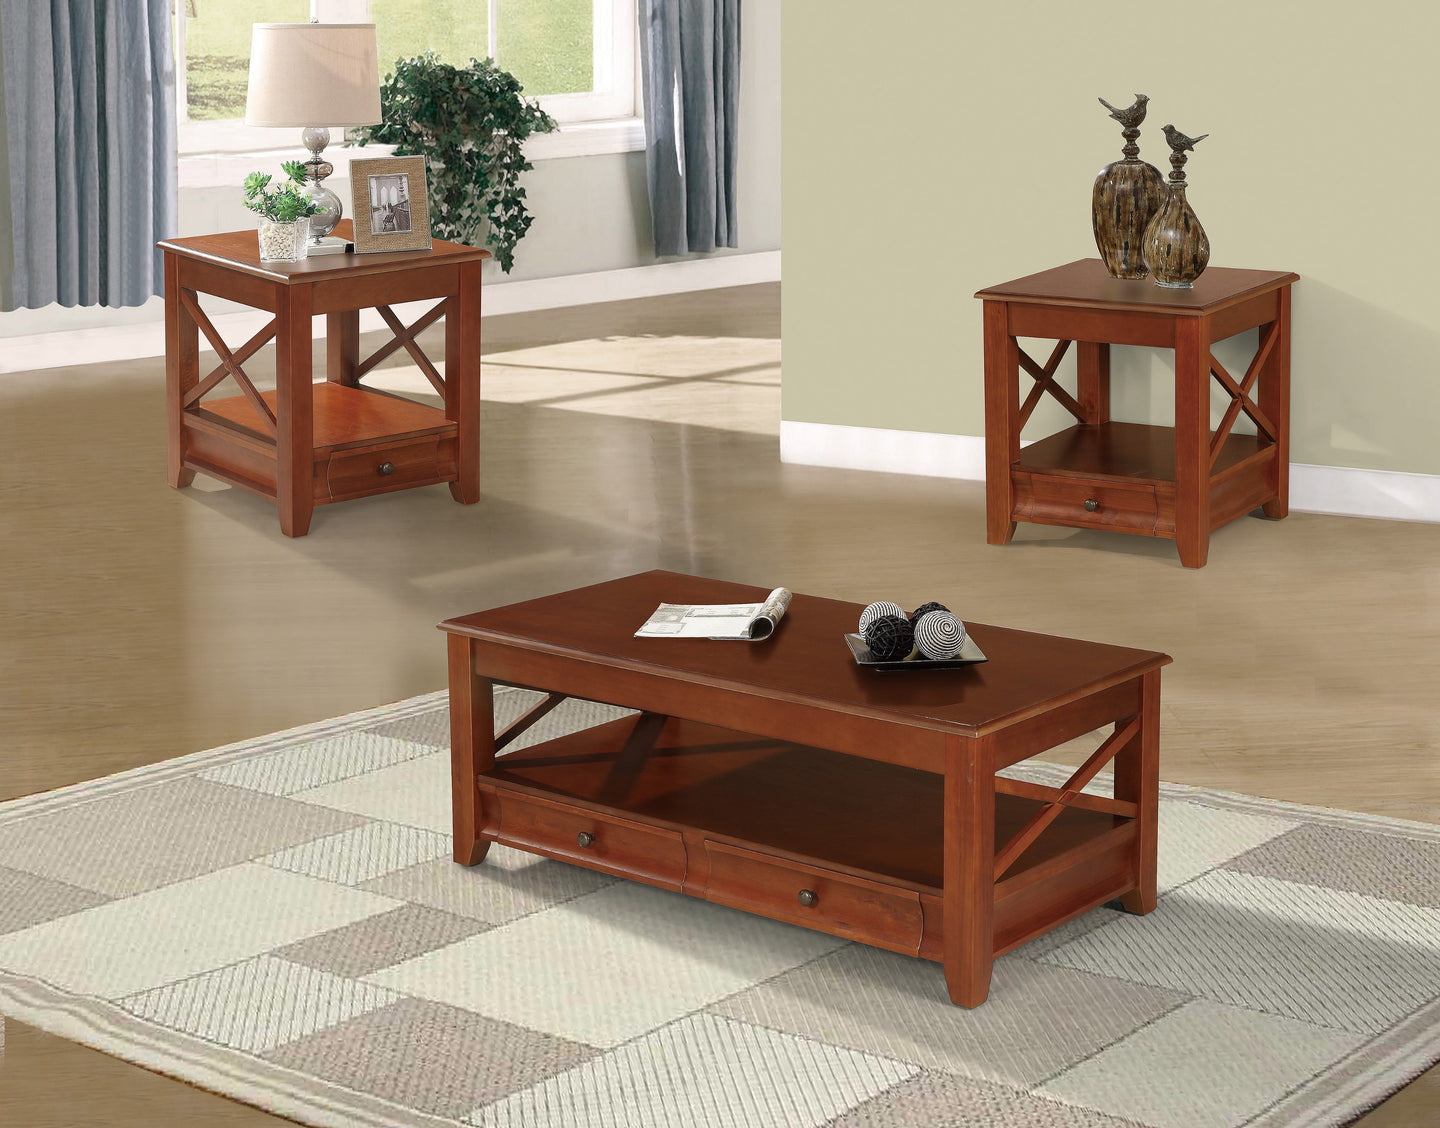 Poundex Cherry Solid Wood Finish 3 Piece Coffee Table Set Flatfair